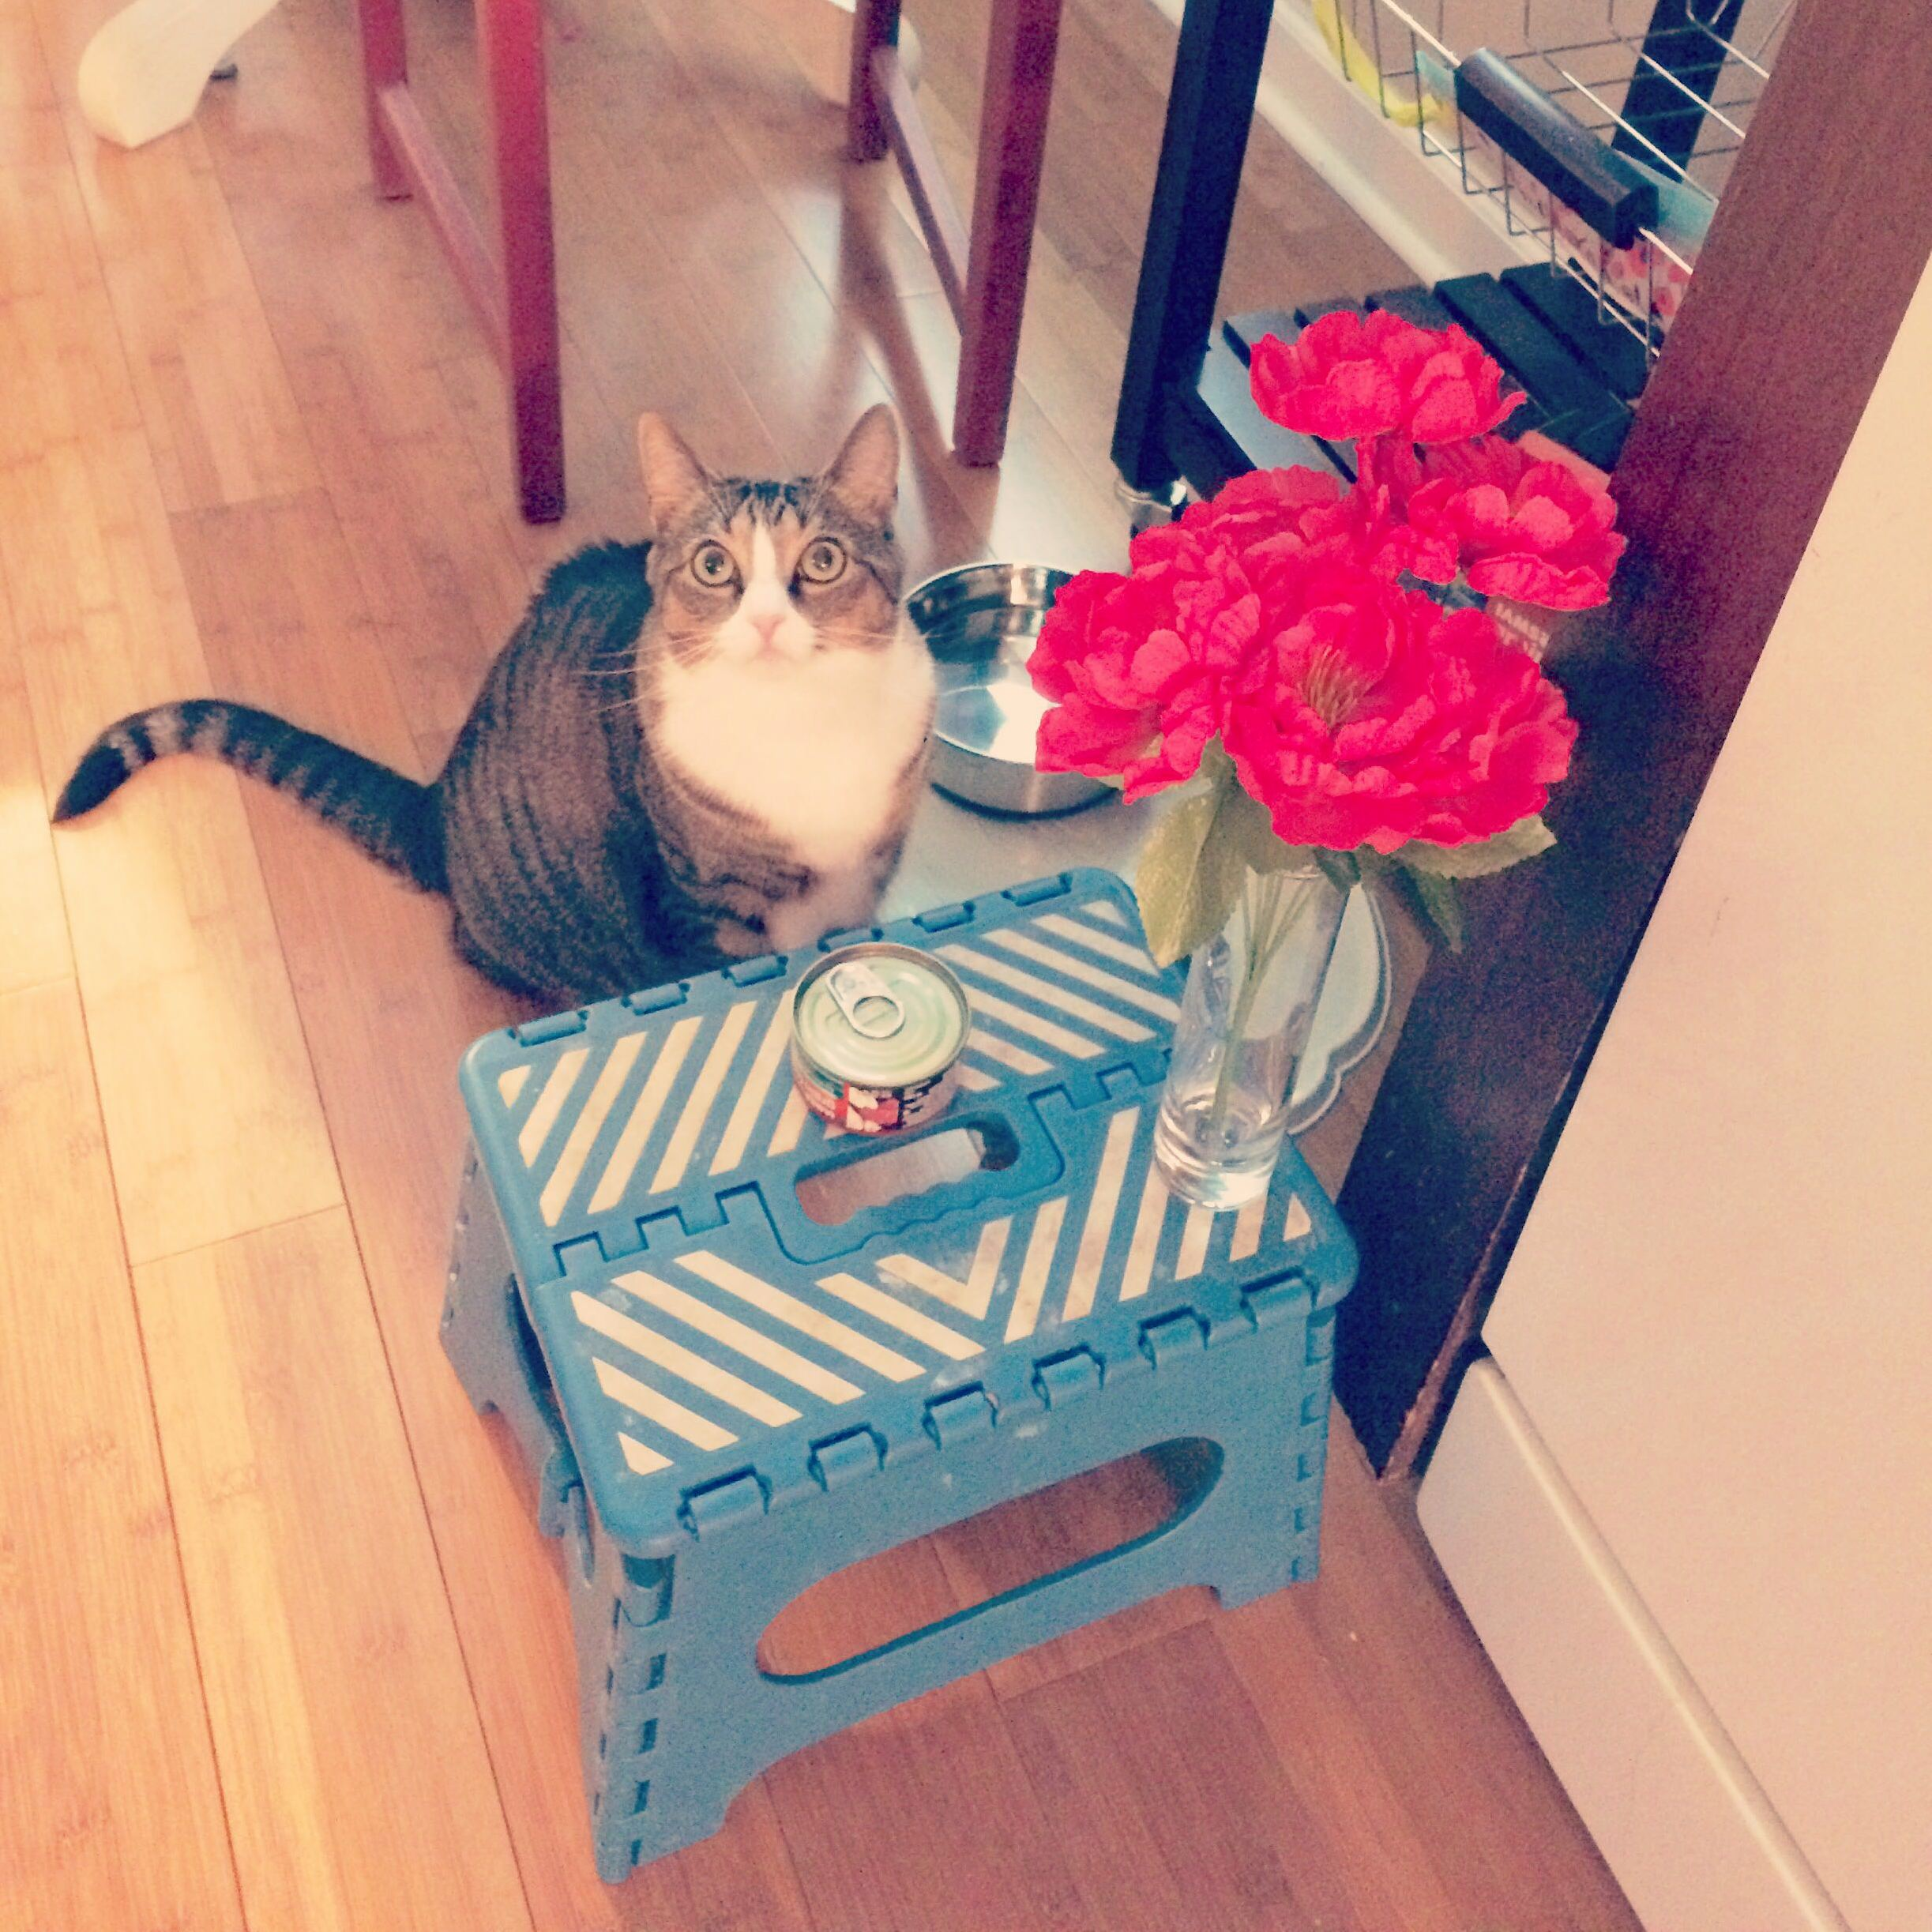 My daughter set a table for cherrycat